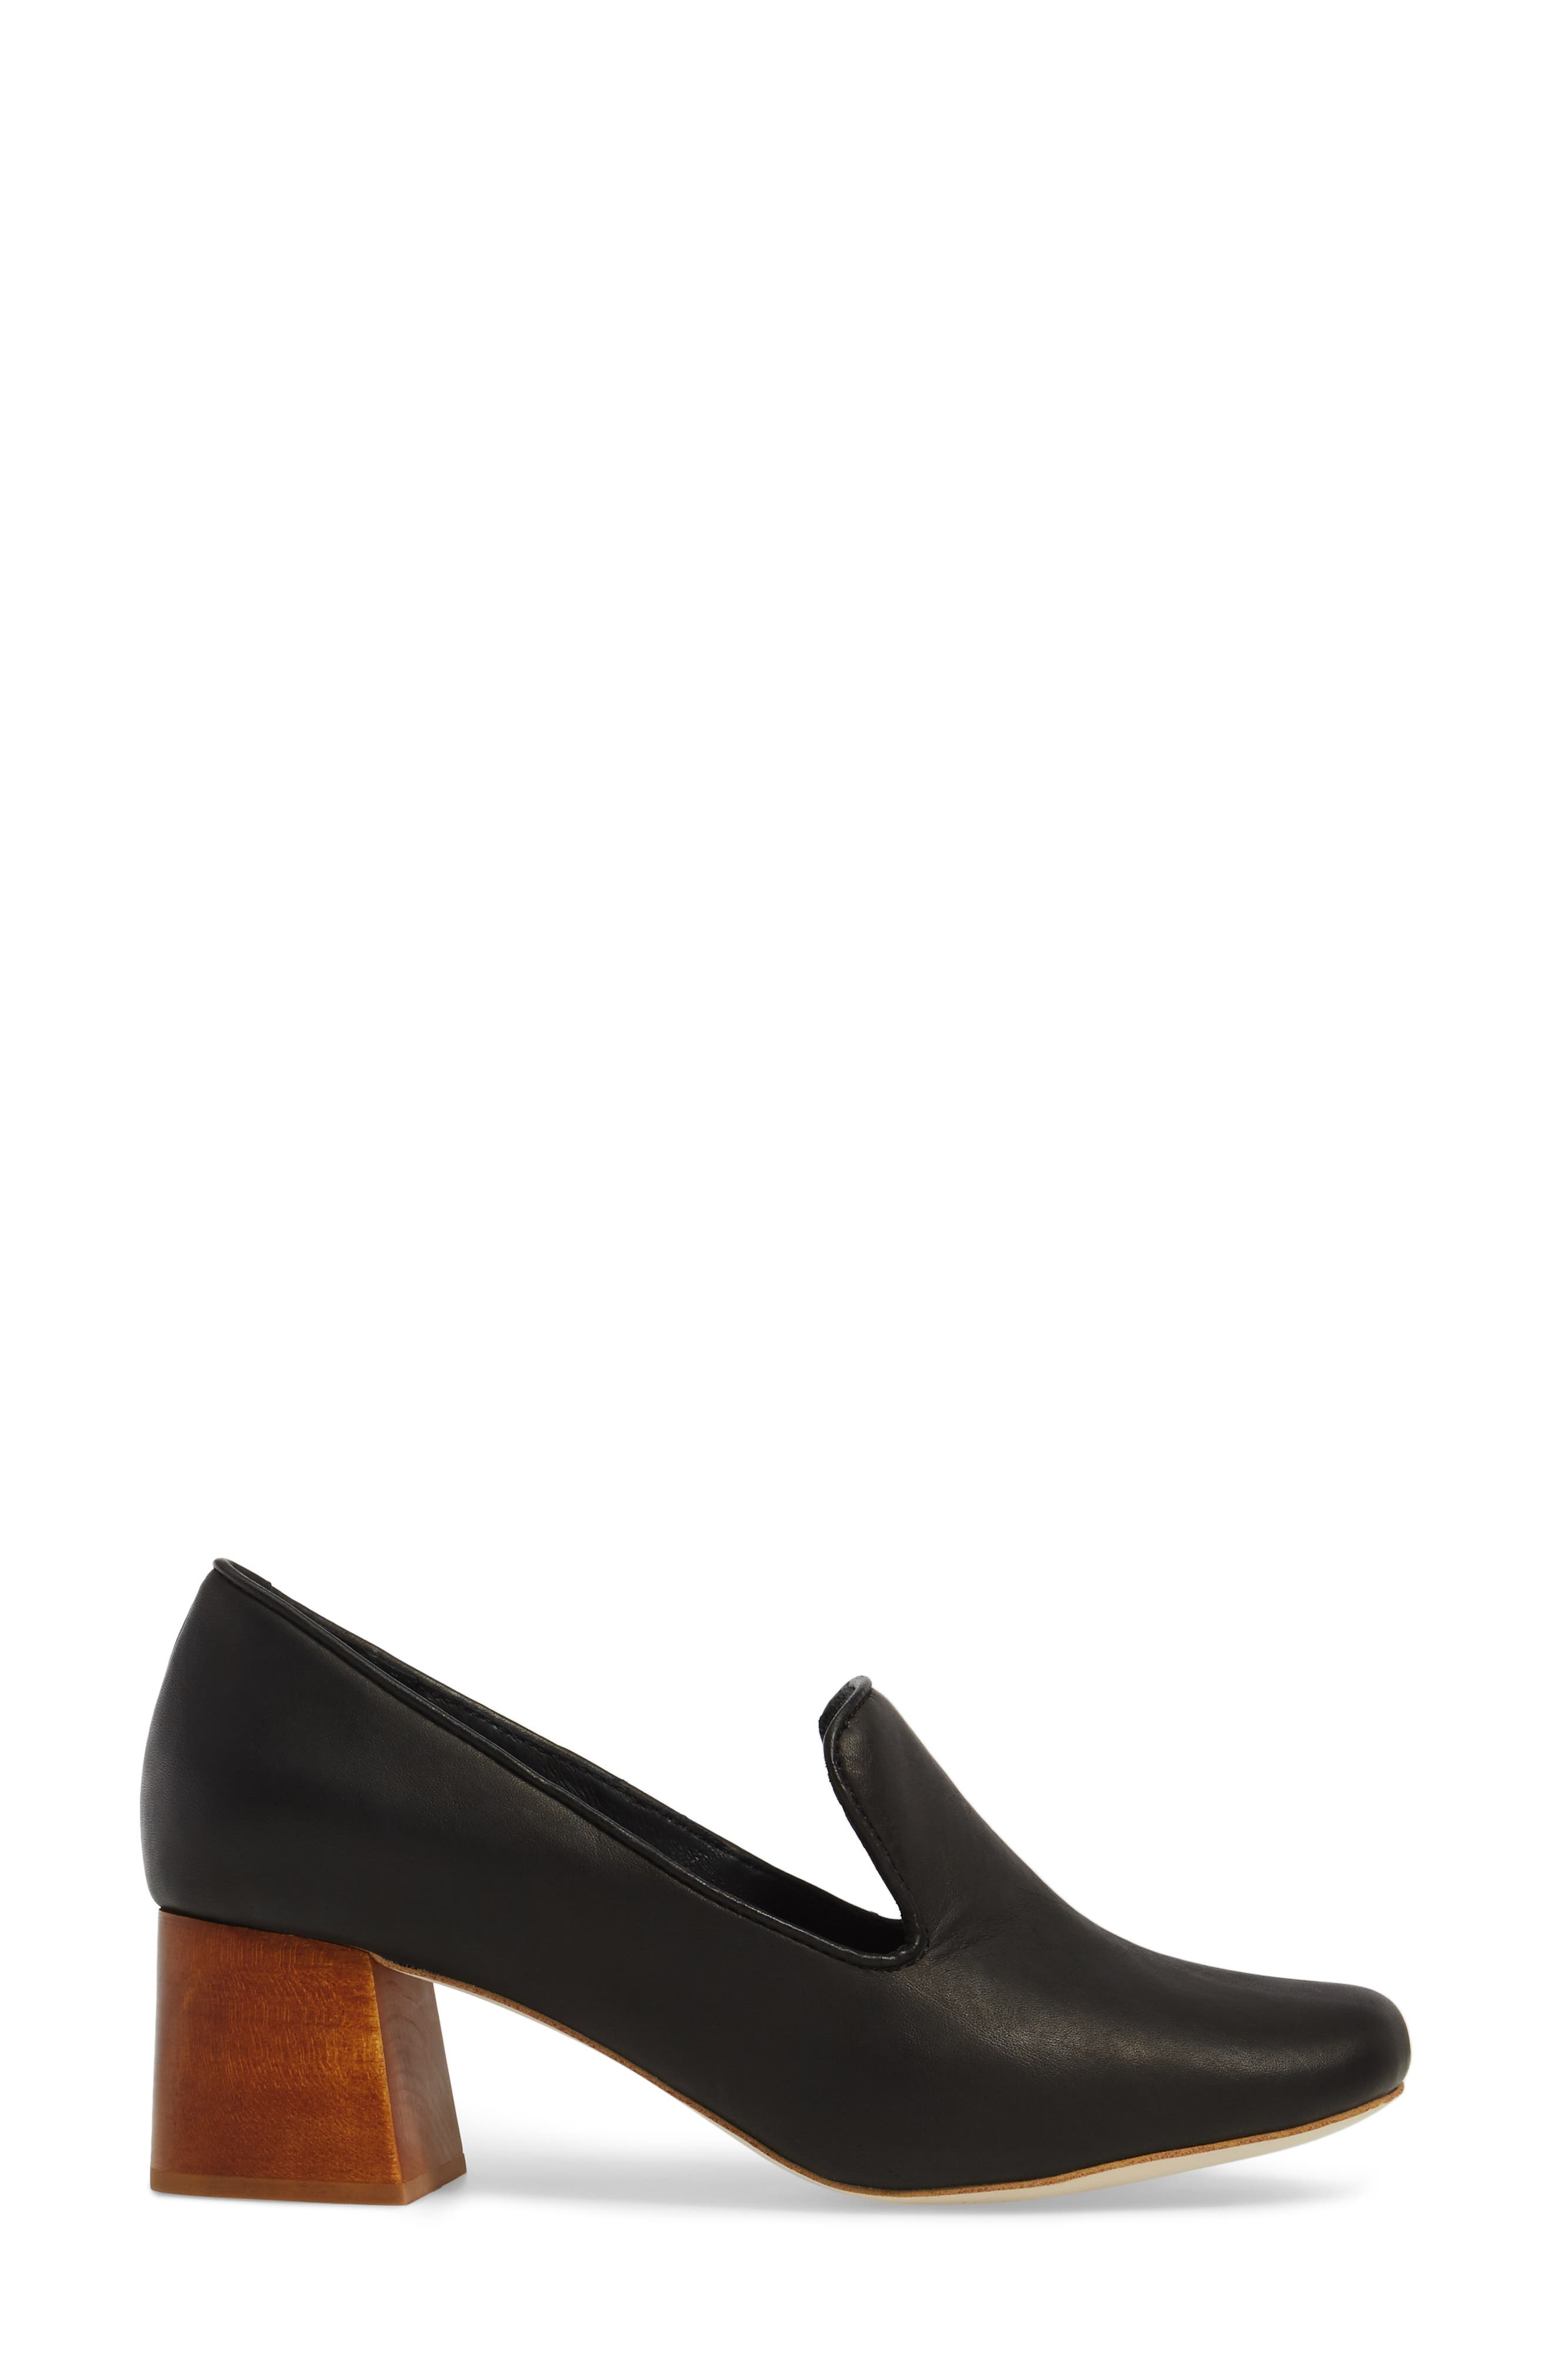 Alternate Image 3  - Jeffrey Campbell Lister Flared Heel Loafer Pump (Women)